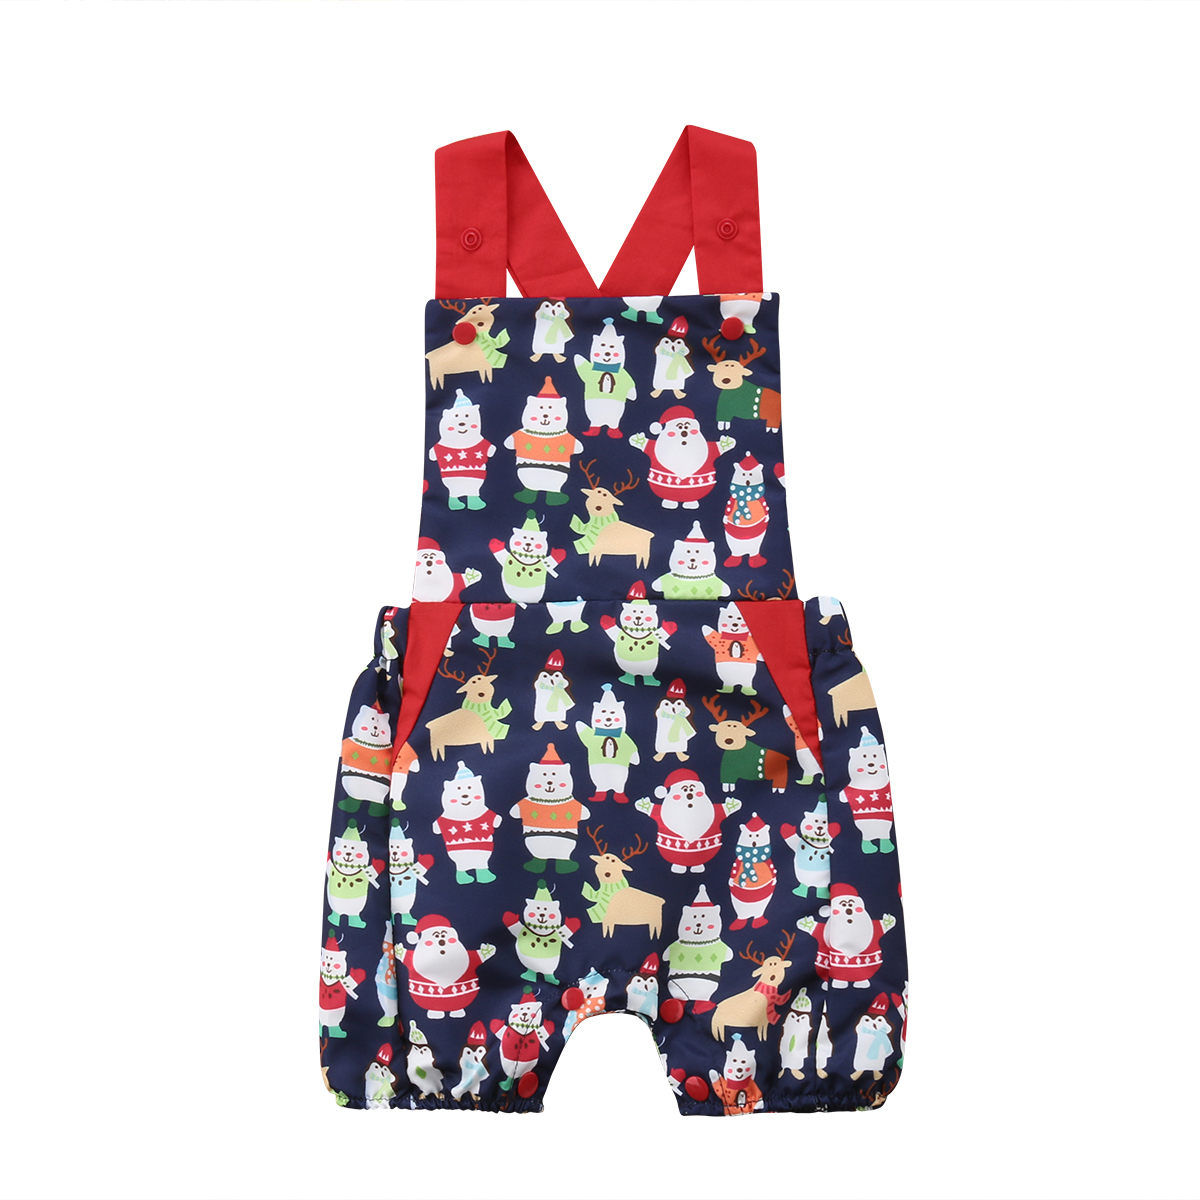 2018 Cute Baby Romper Sleeveless One-Piece Newborn Toddler Baby Girl Clothes Kids Baby Unisex Cartoon Romper Jumpsuit Outfit retail 2015 winter new cute baby girl clothes black swan romper tutu dress kids cartoon clothes sets newborn outfit suits 4pcs